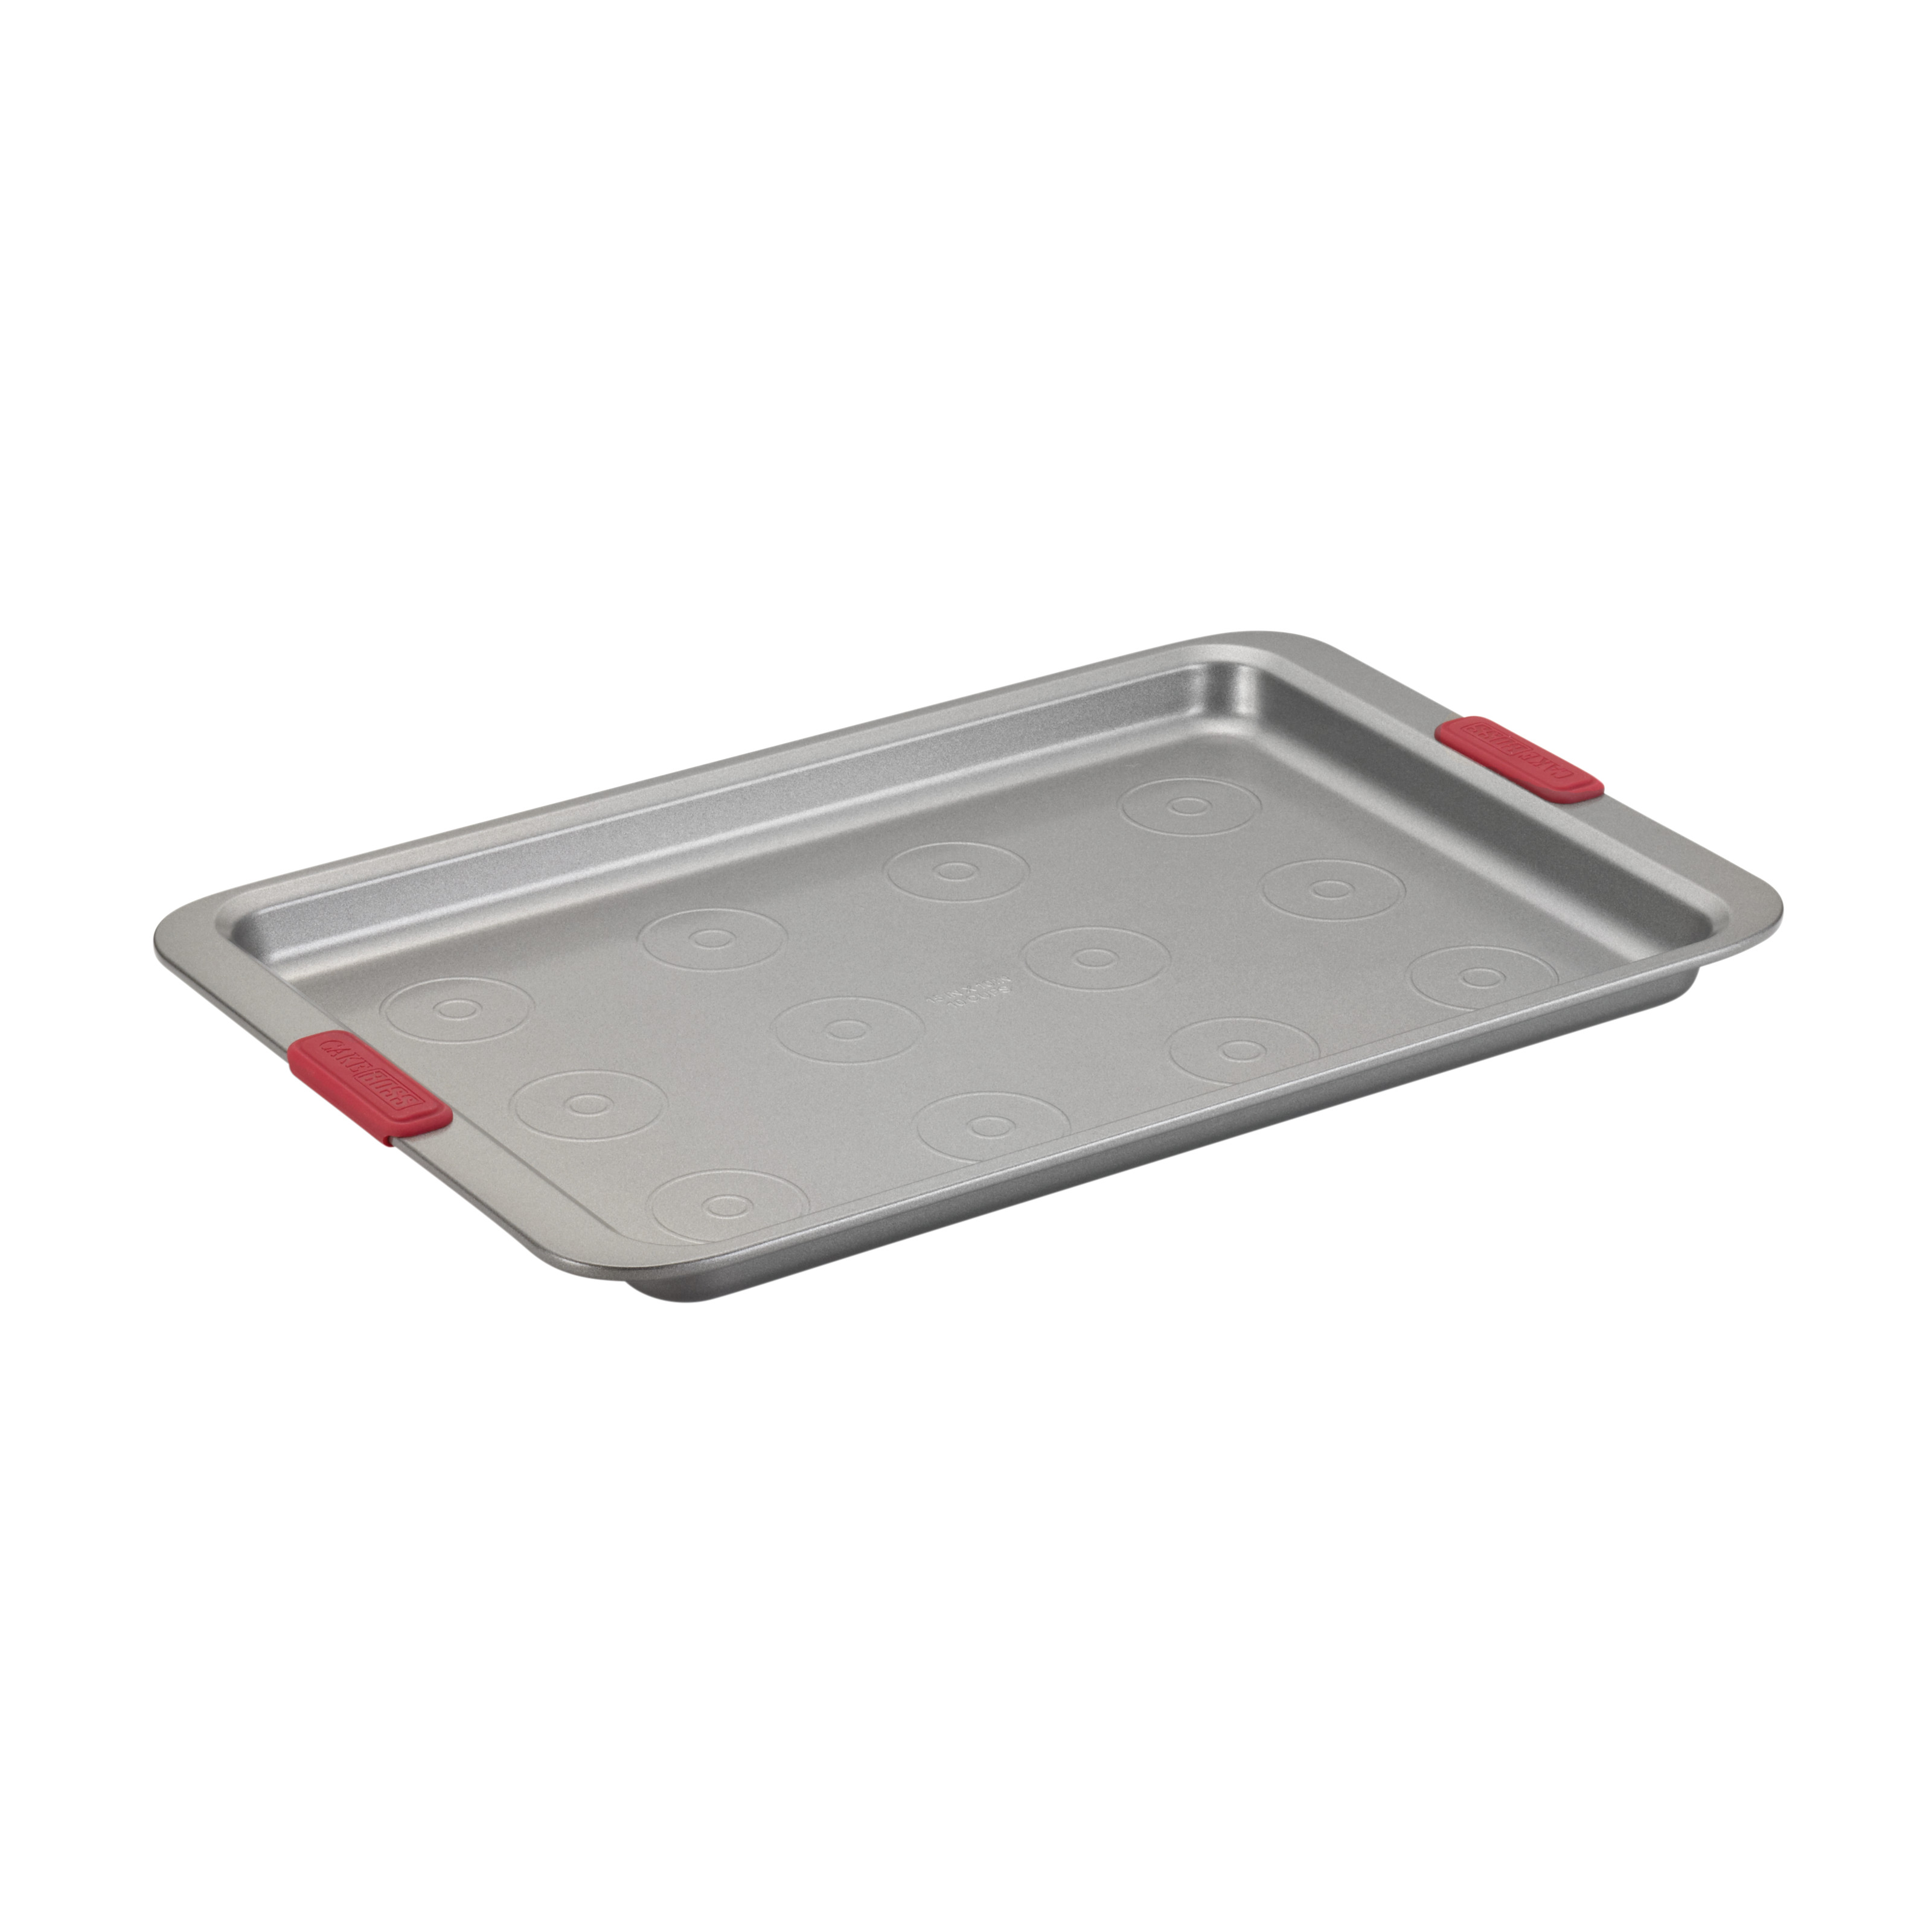 "Cake Boss Basics Nonstick Bakeware 10"" by 15"" Cookie Pan with Drop Zones, Light Gray with Red... by Meyer Corporation"